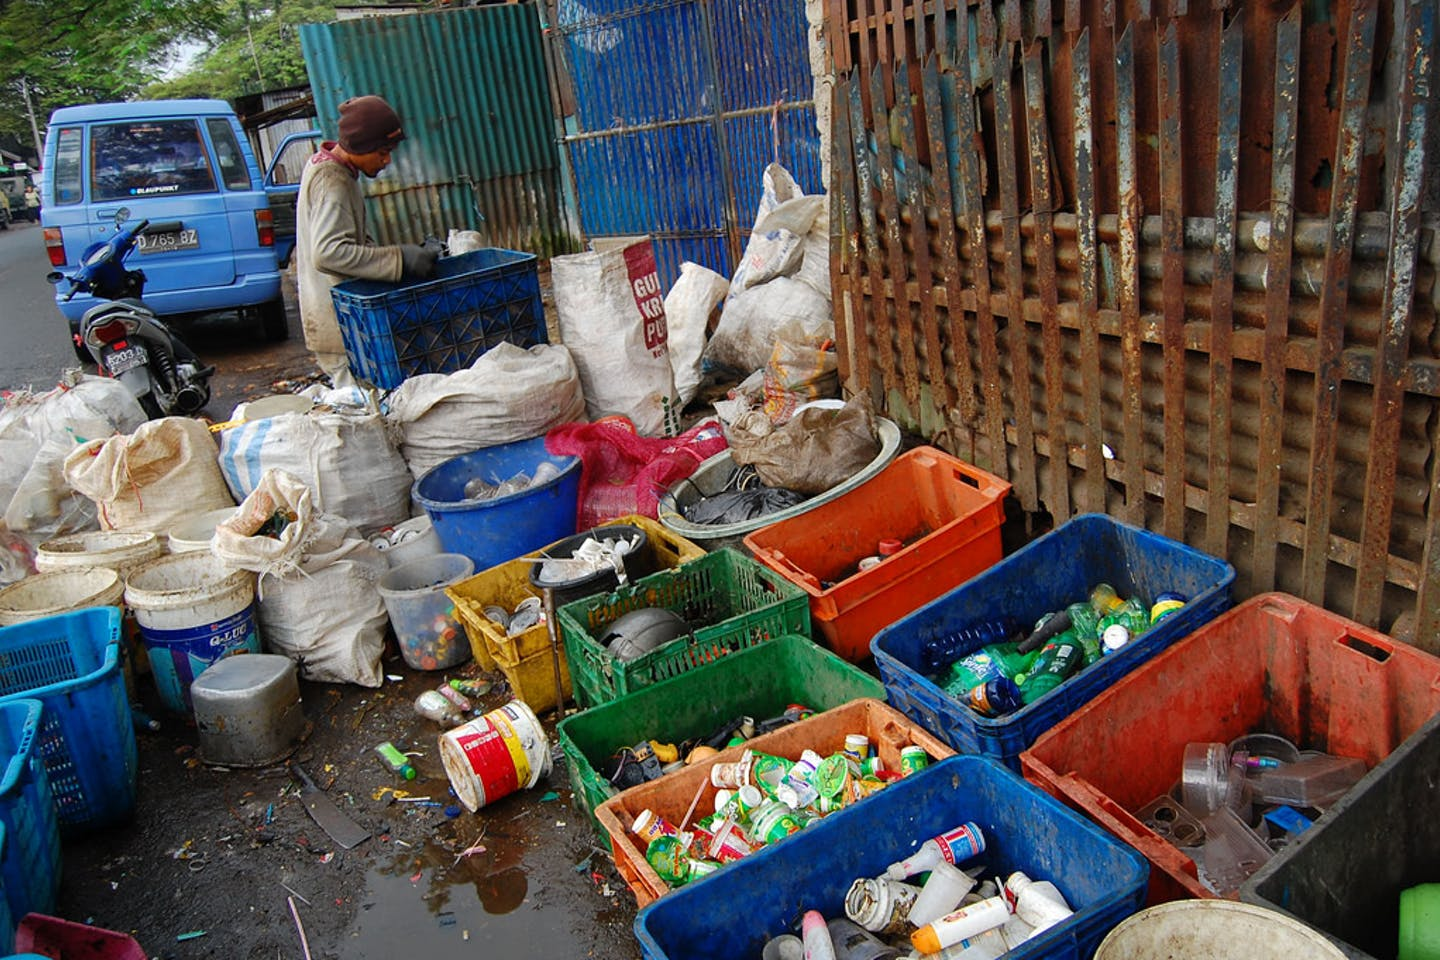 Waste collector in Indonesia segregating trash